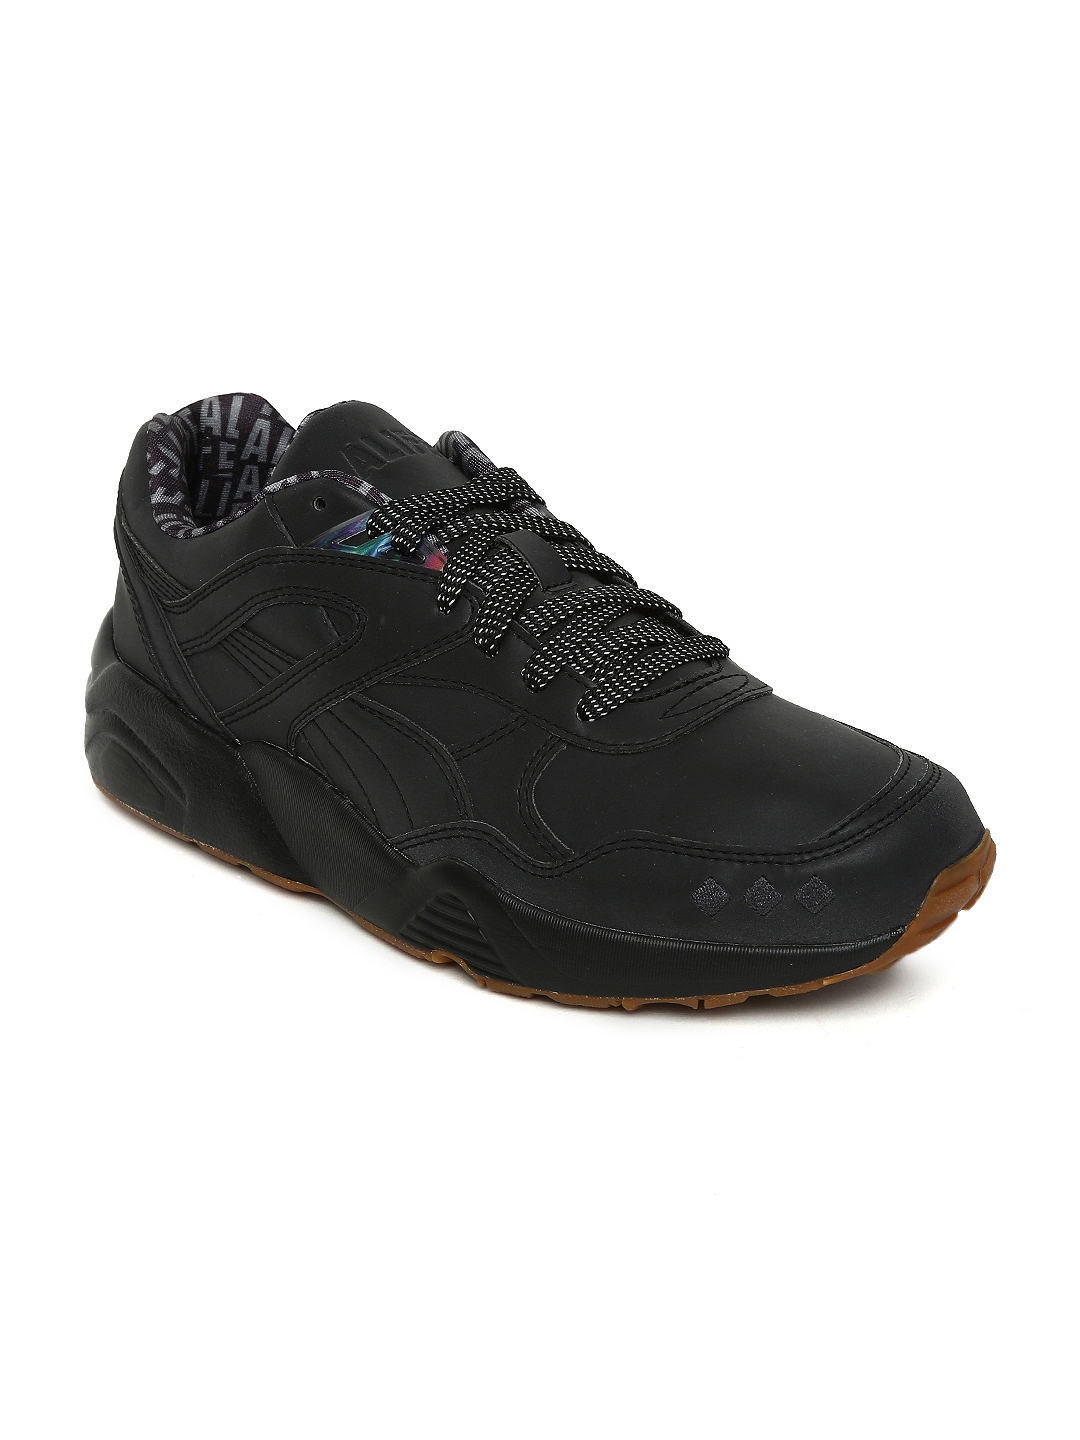 Buy Puma Unisex Black R698 X Alife Reflective Sneakers - Casual ... 75e8dc9428